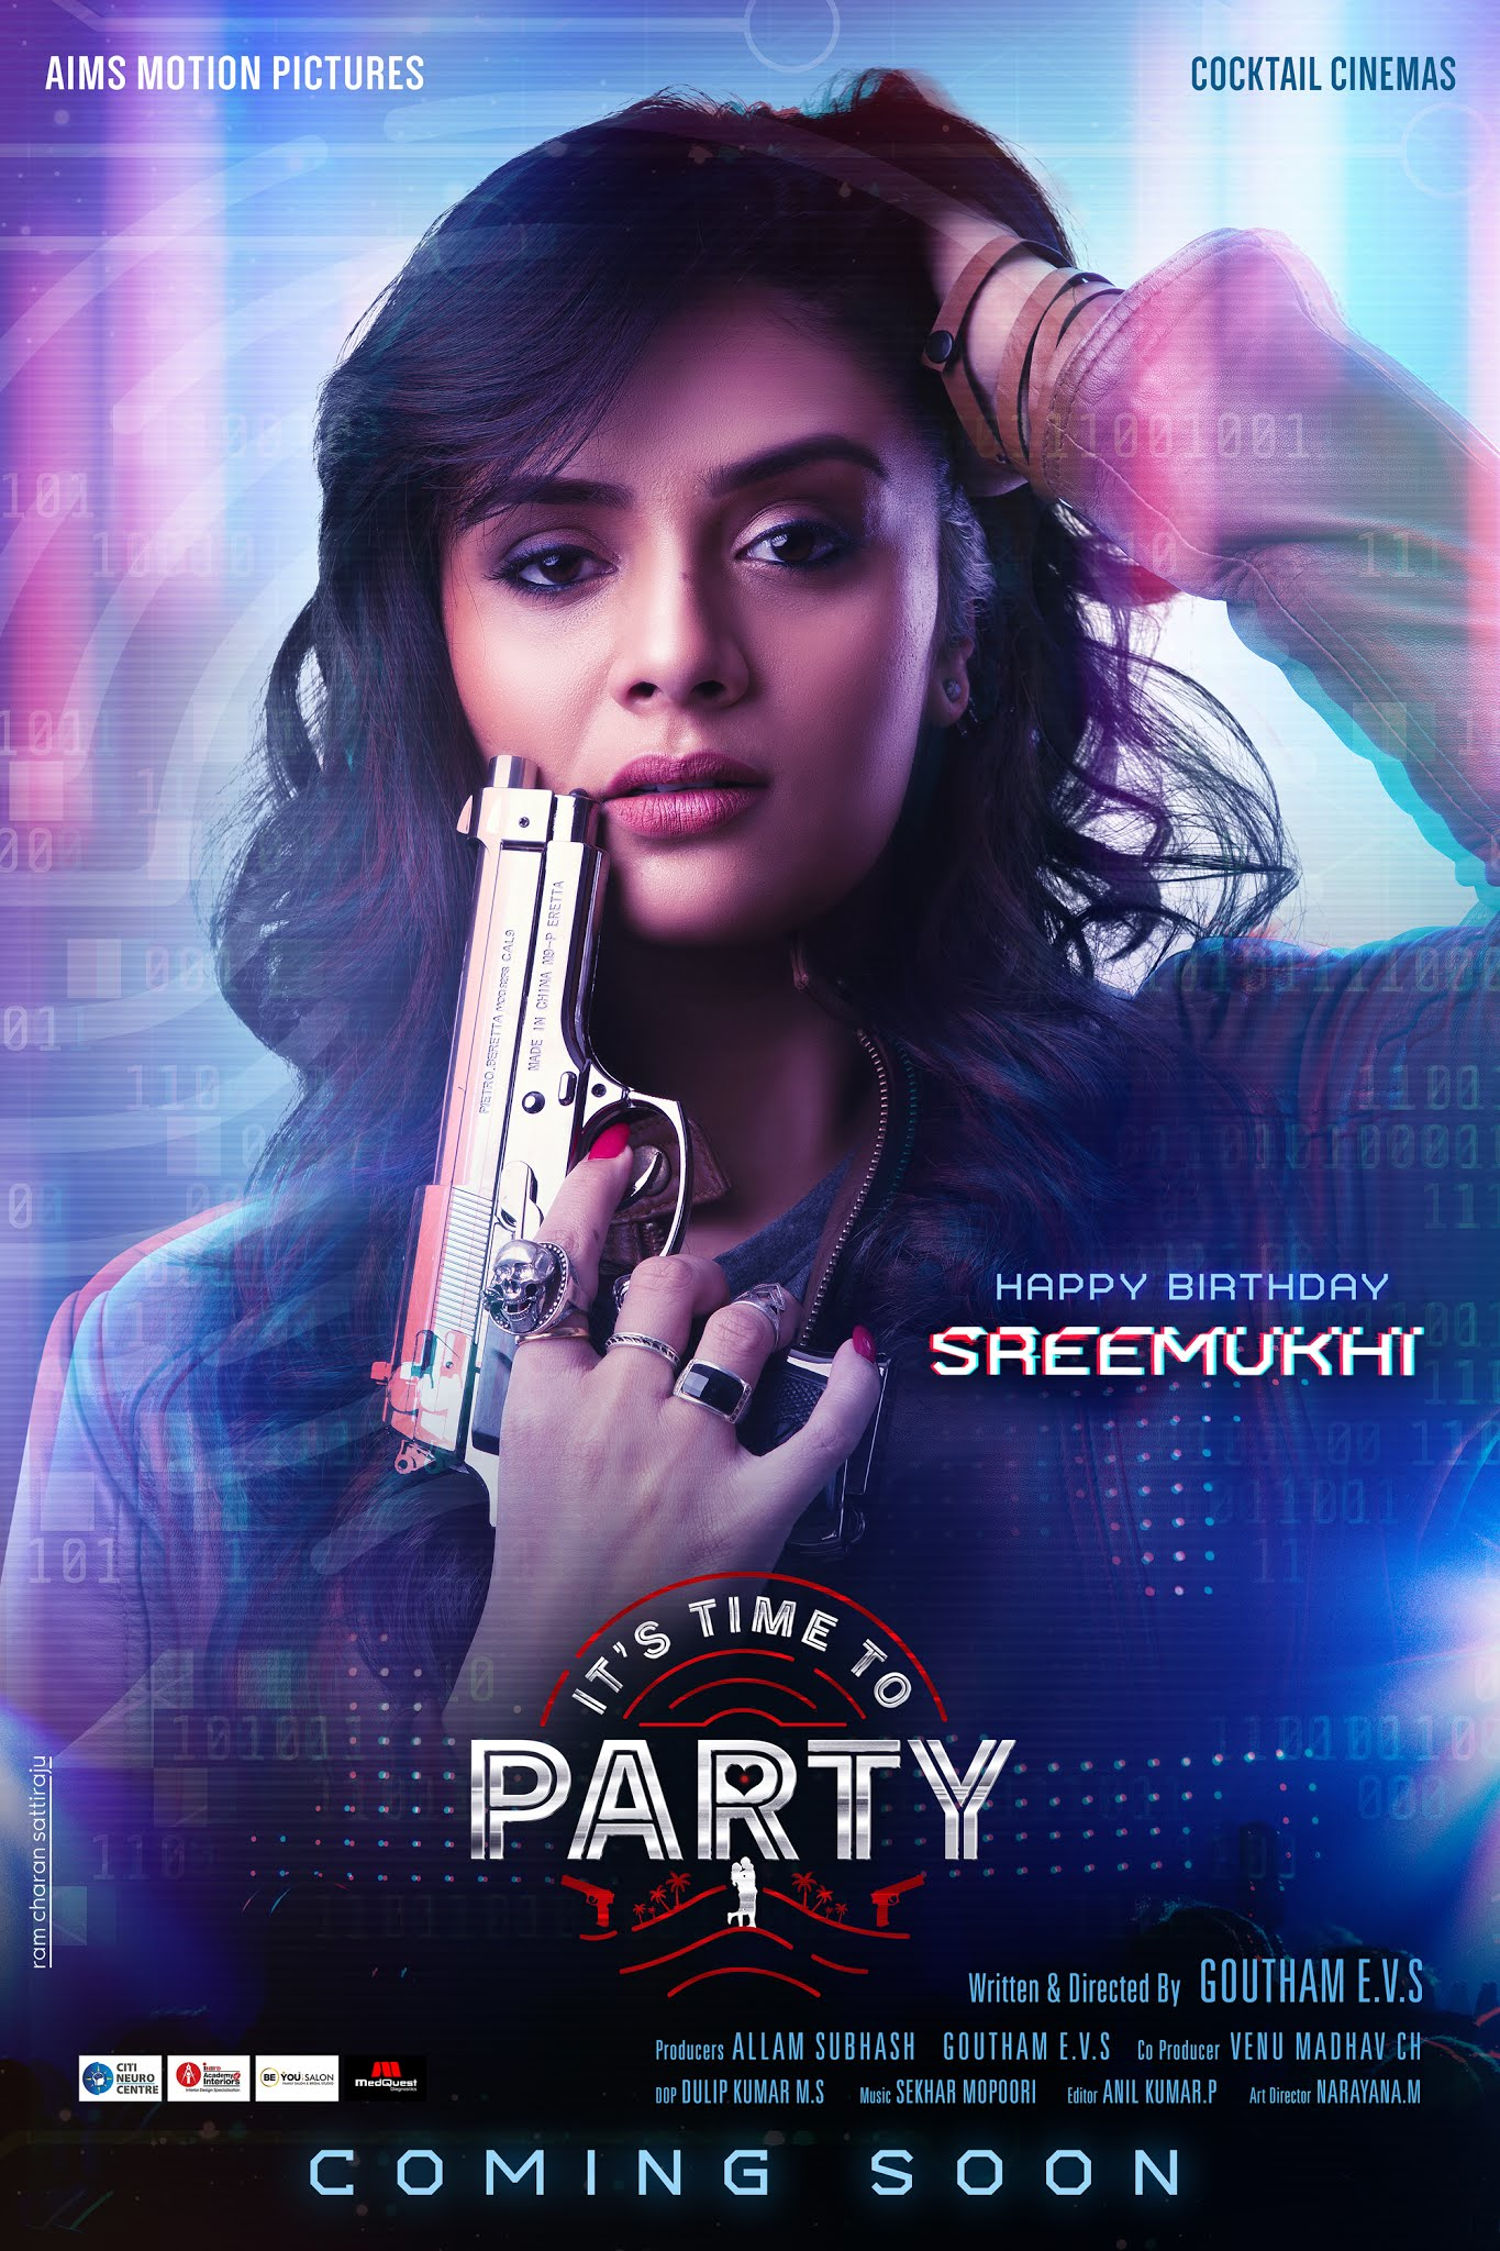 Its Time to Party Movie Heroine Sreemukhi Birthday Poster